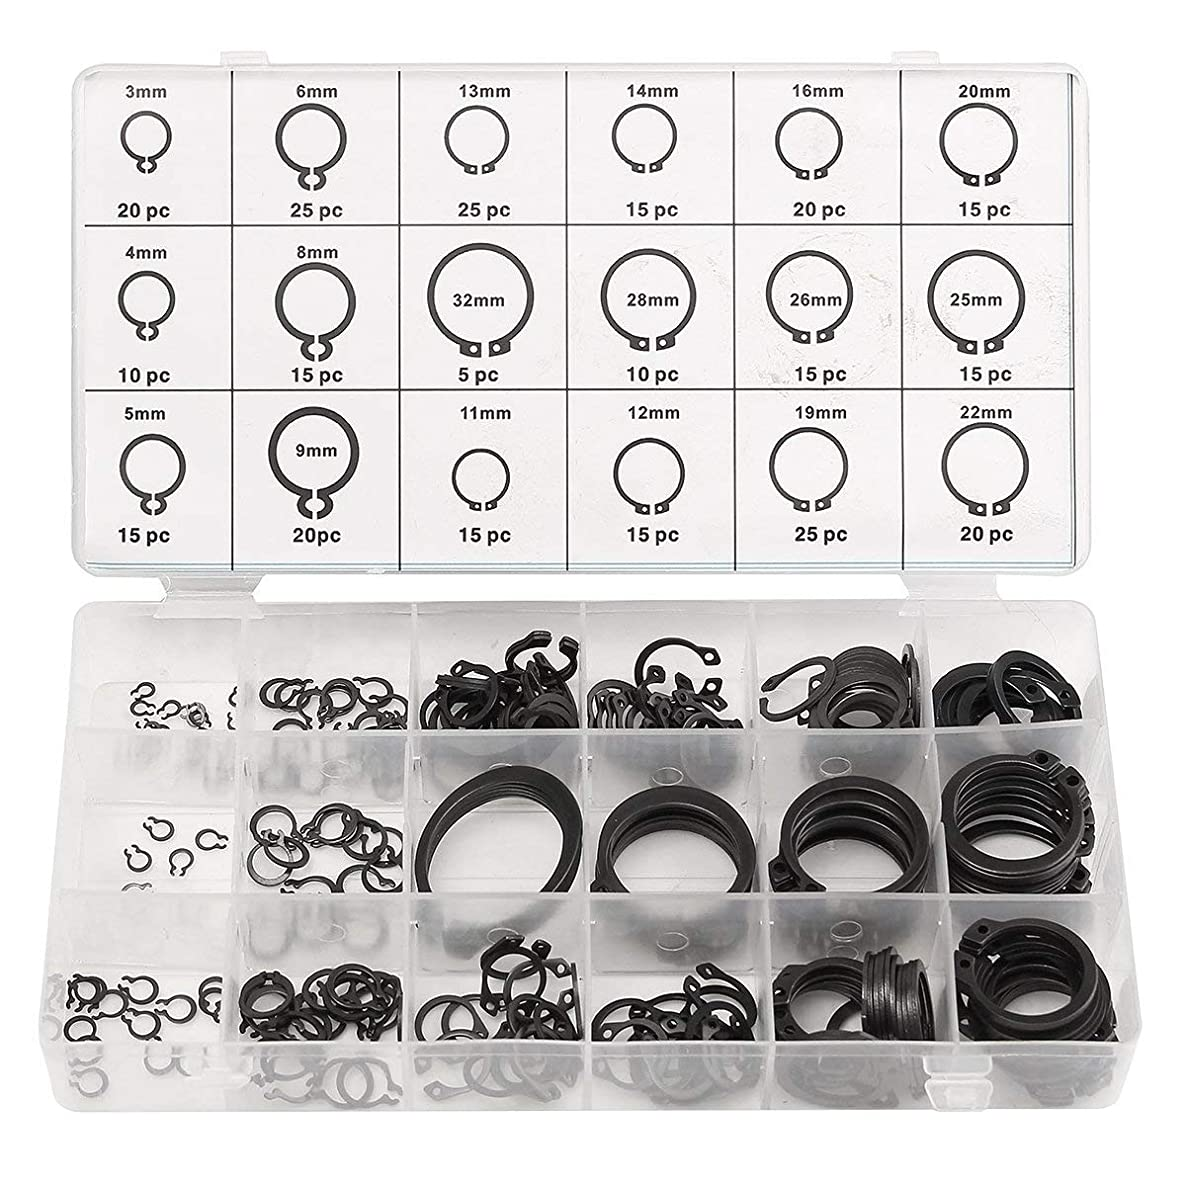 HIFROM 300pcs C-Clips Snap Ring Shop Assortment Black Washer Hardware Circlip Retaining Ring Set for Industrial Fasteners 18 Sizes